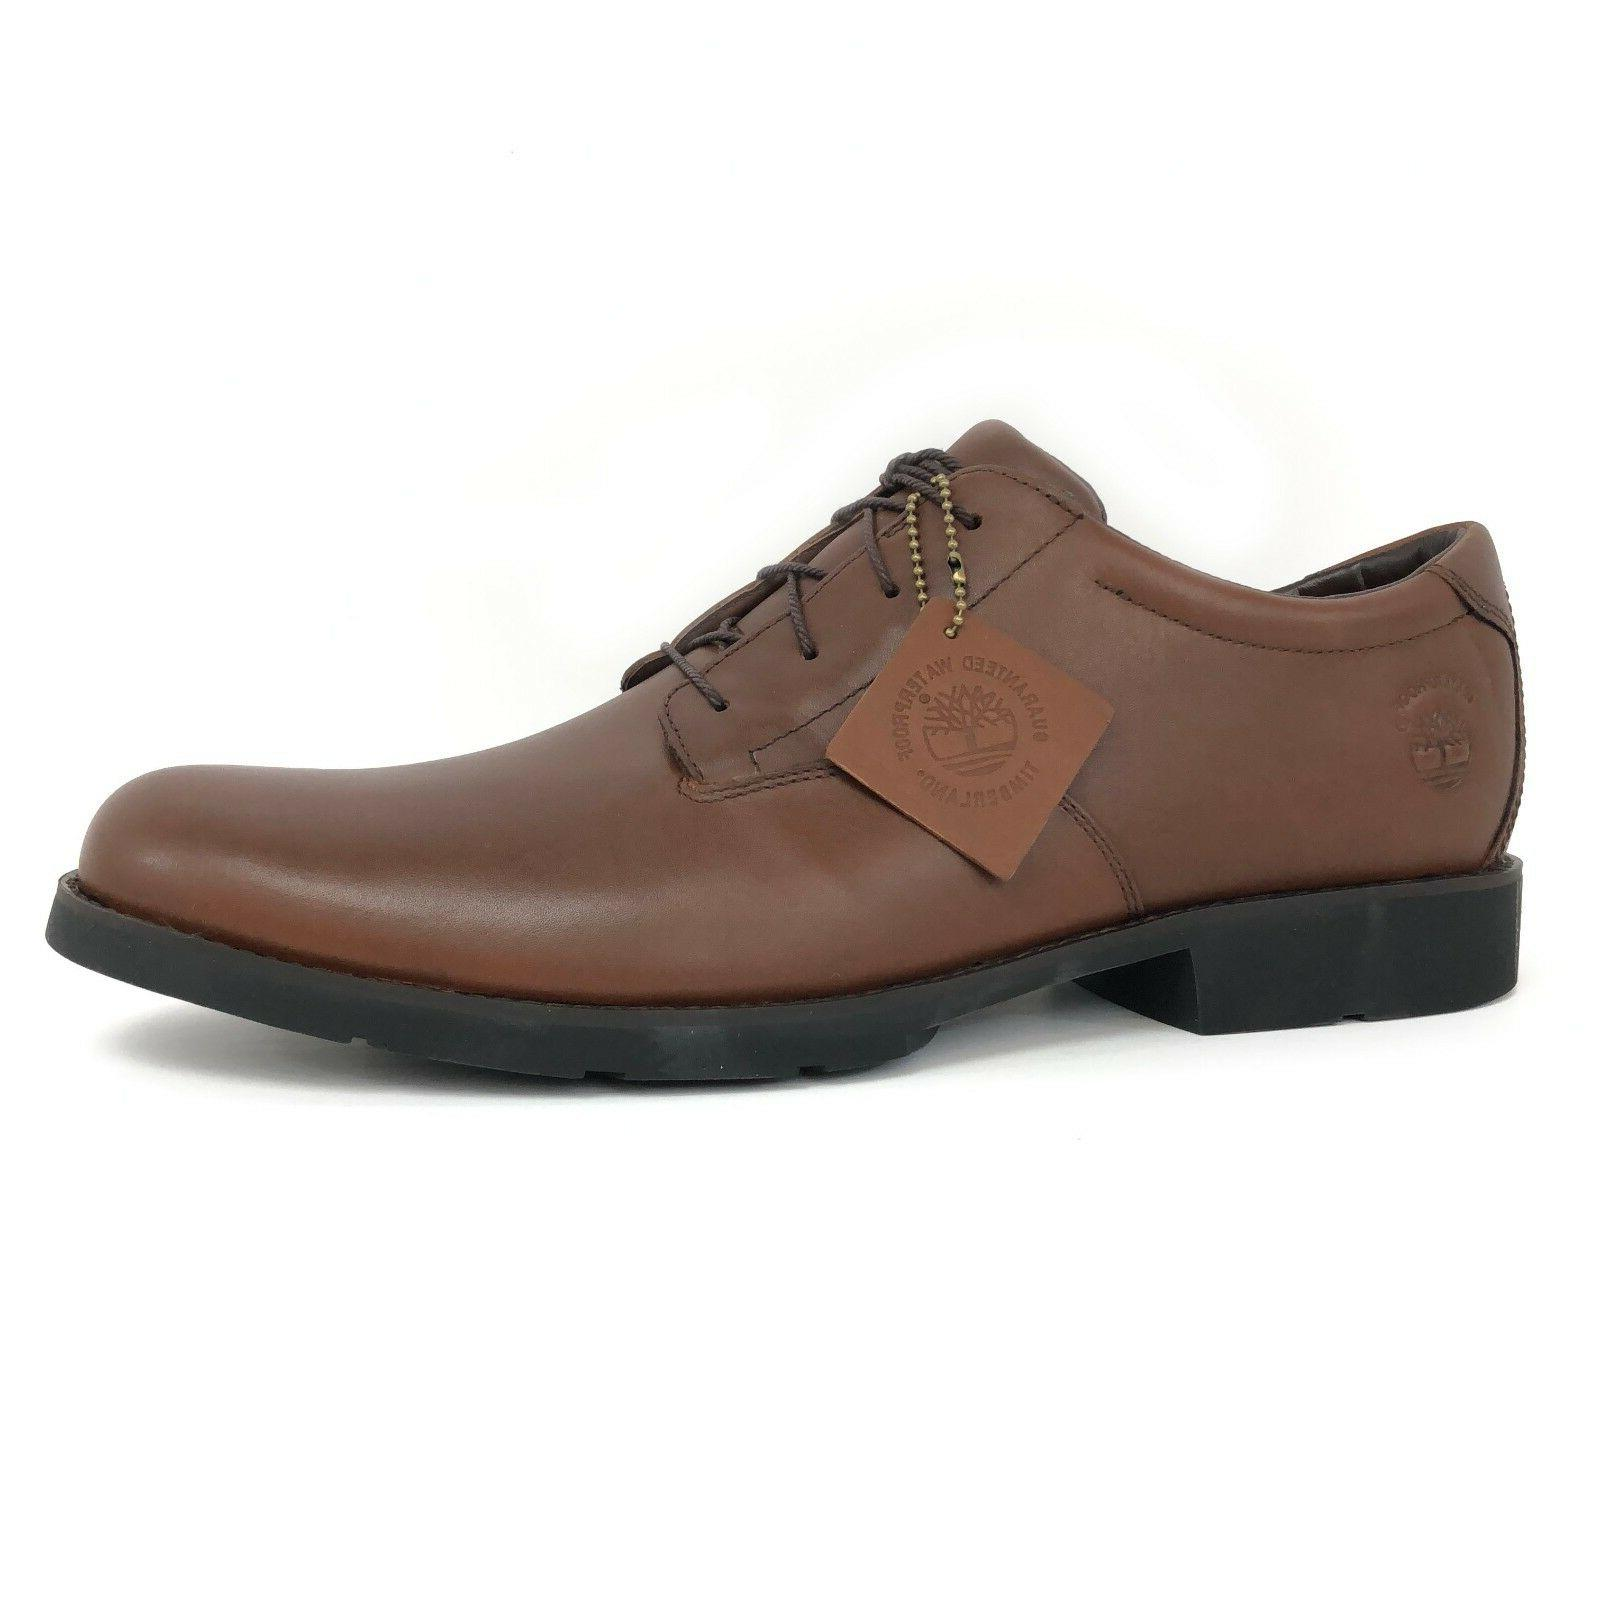 Timberland Men's Metro Weatherbuck Brown Waterproof Oxford S